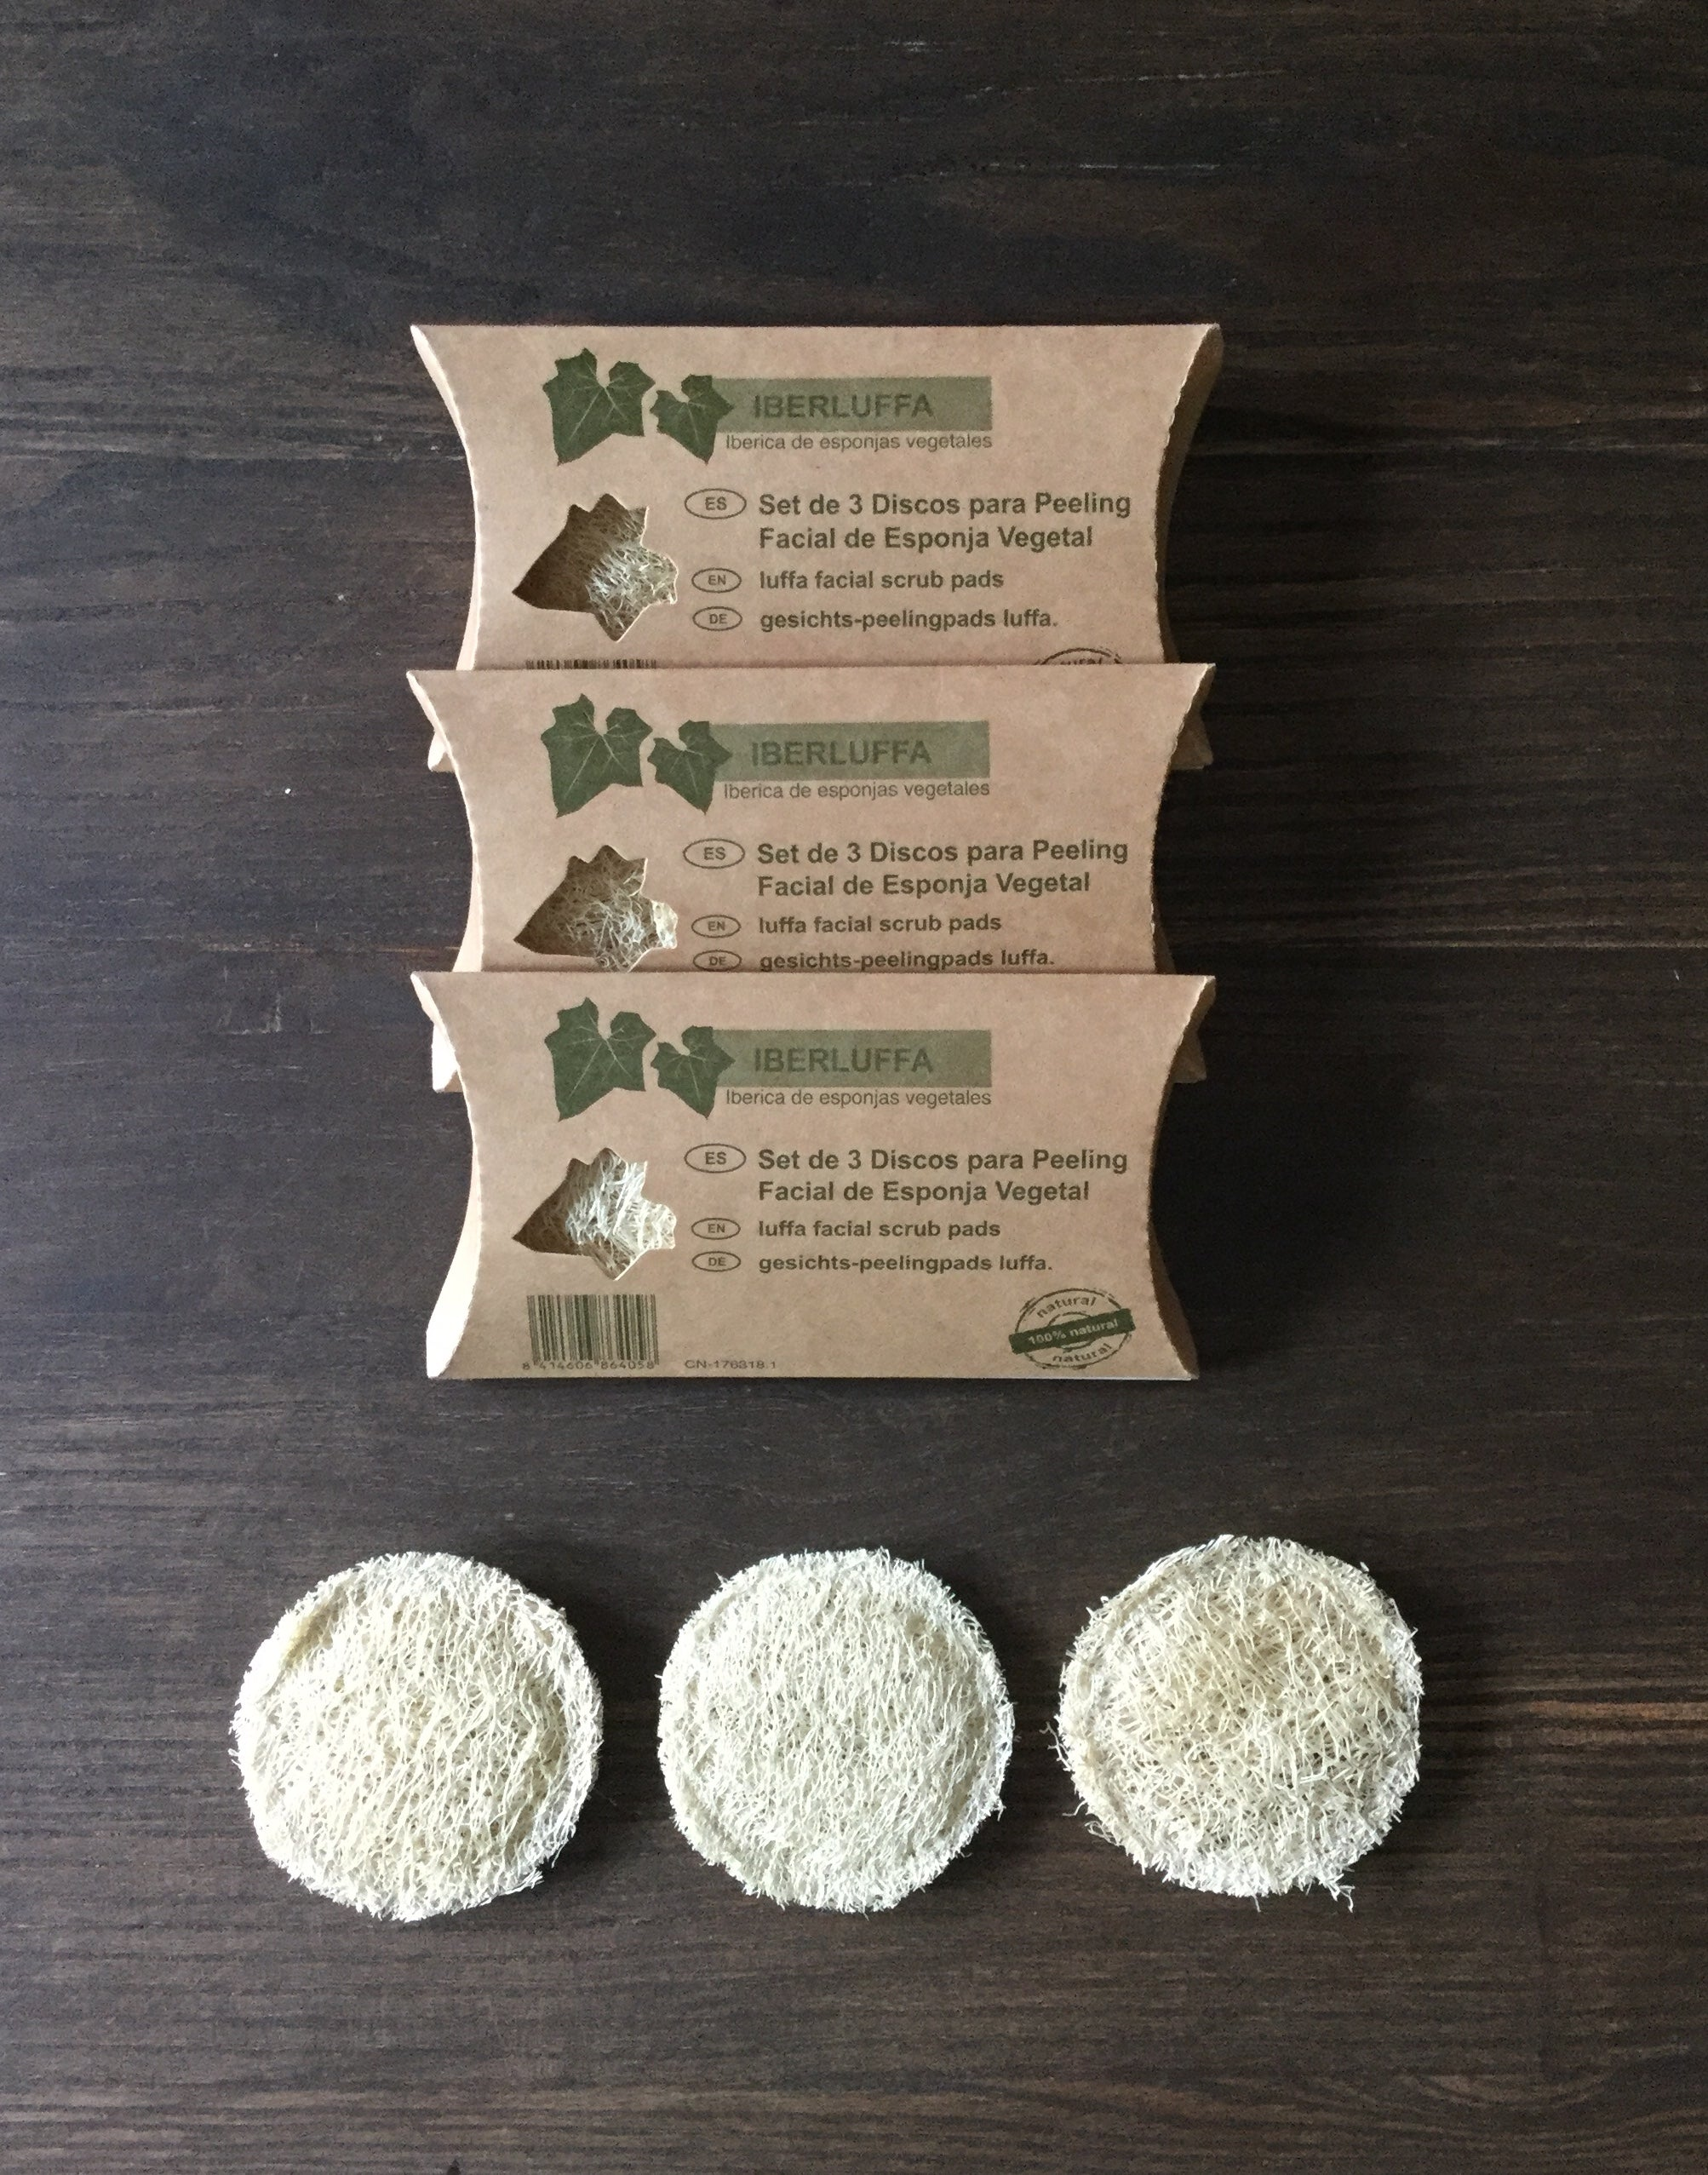 Luffa Facial Scrub Pads, set of 3